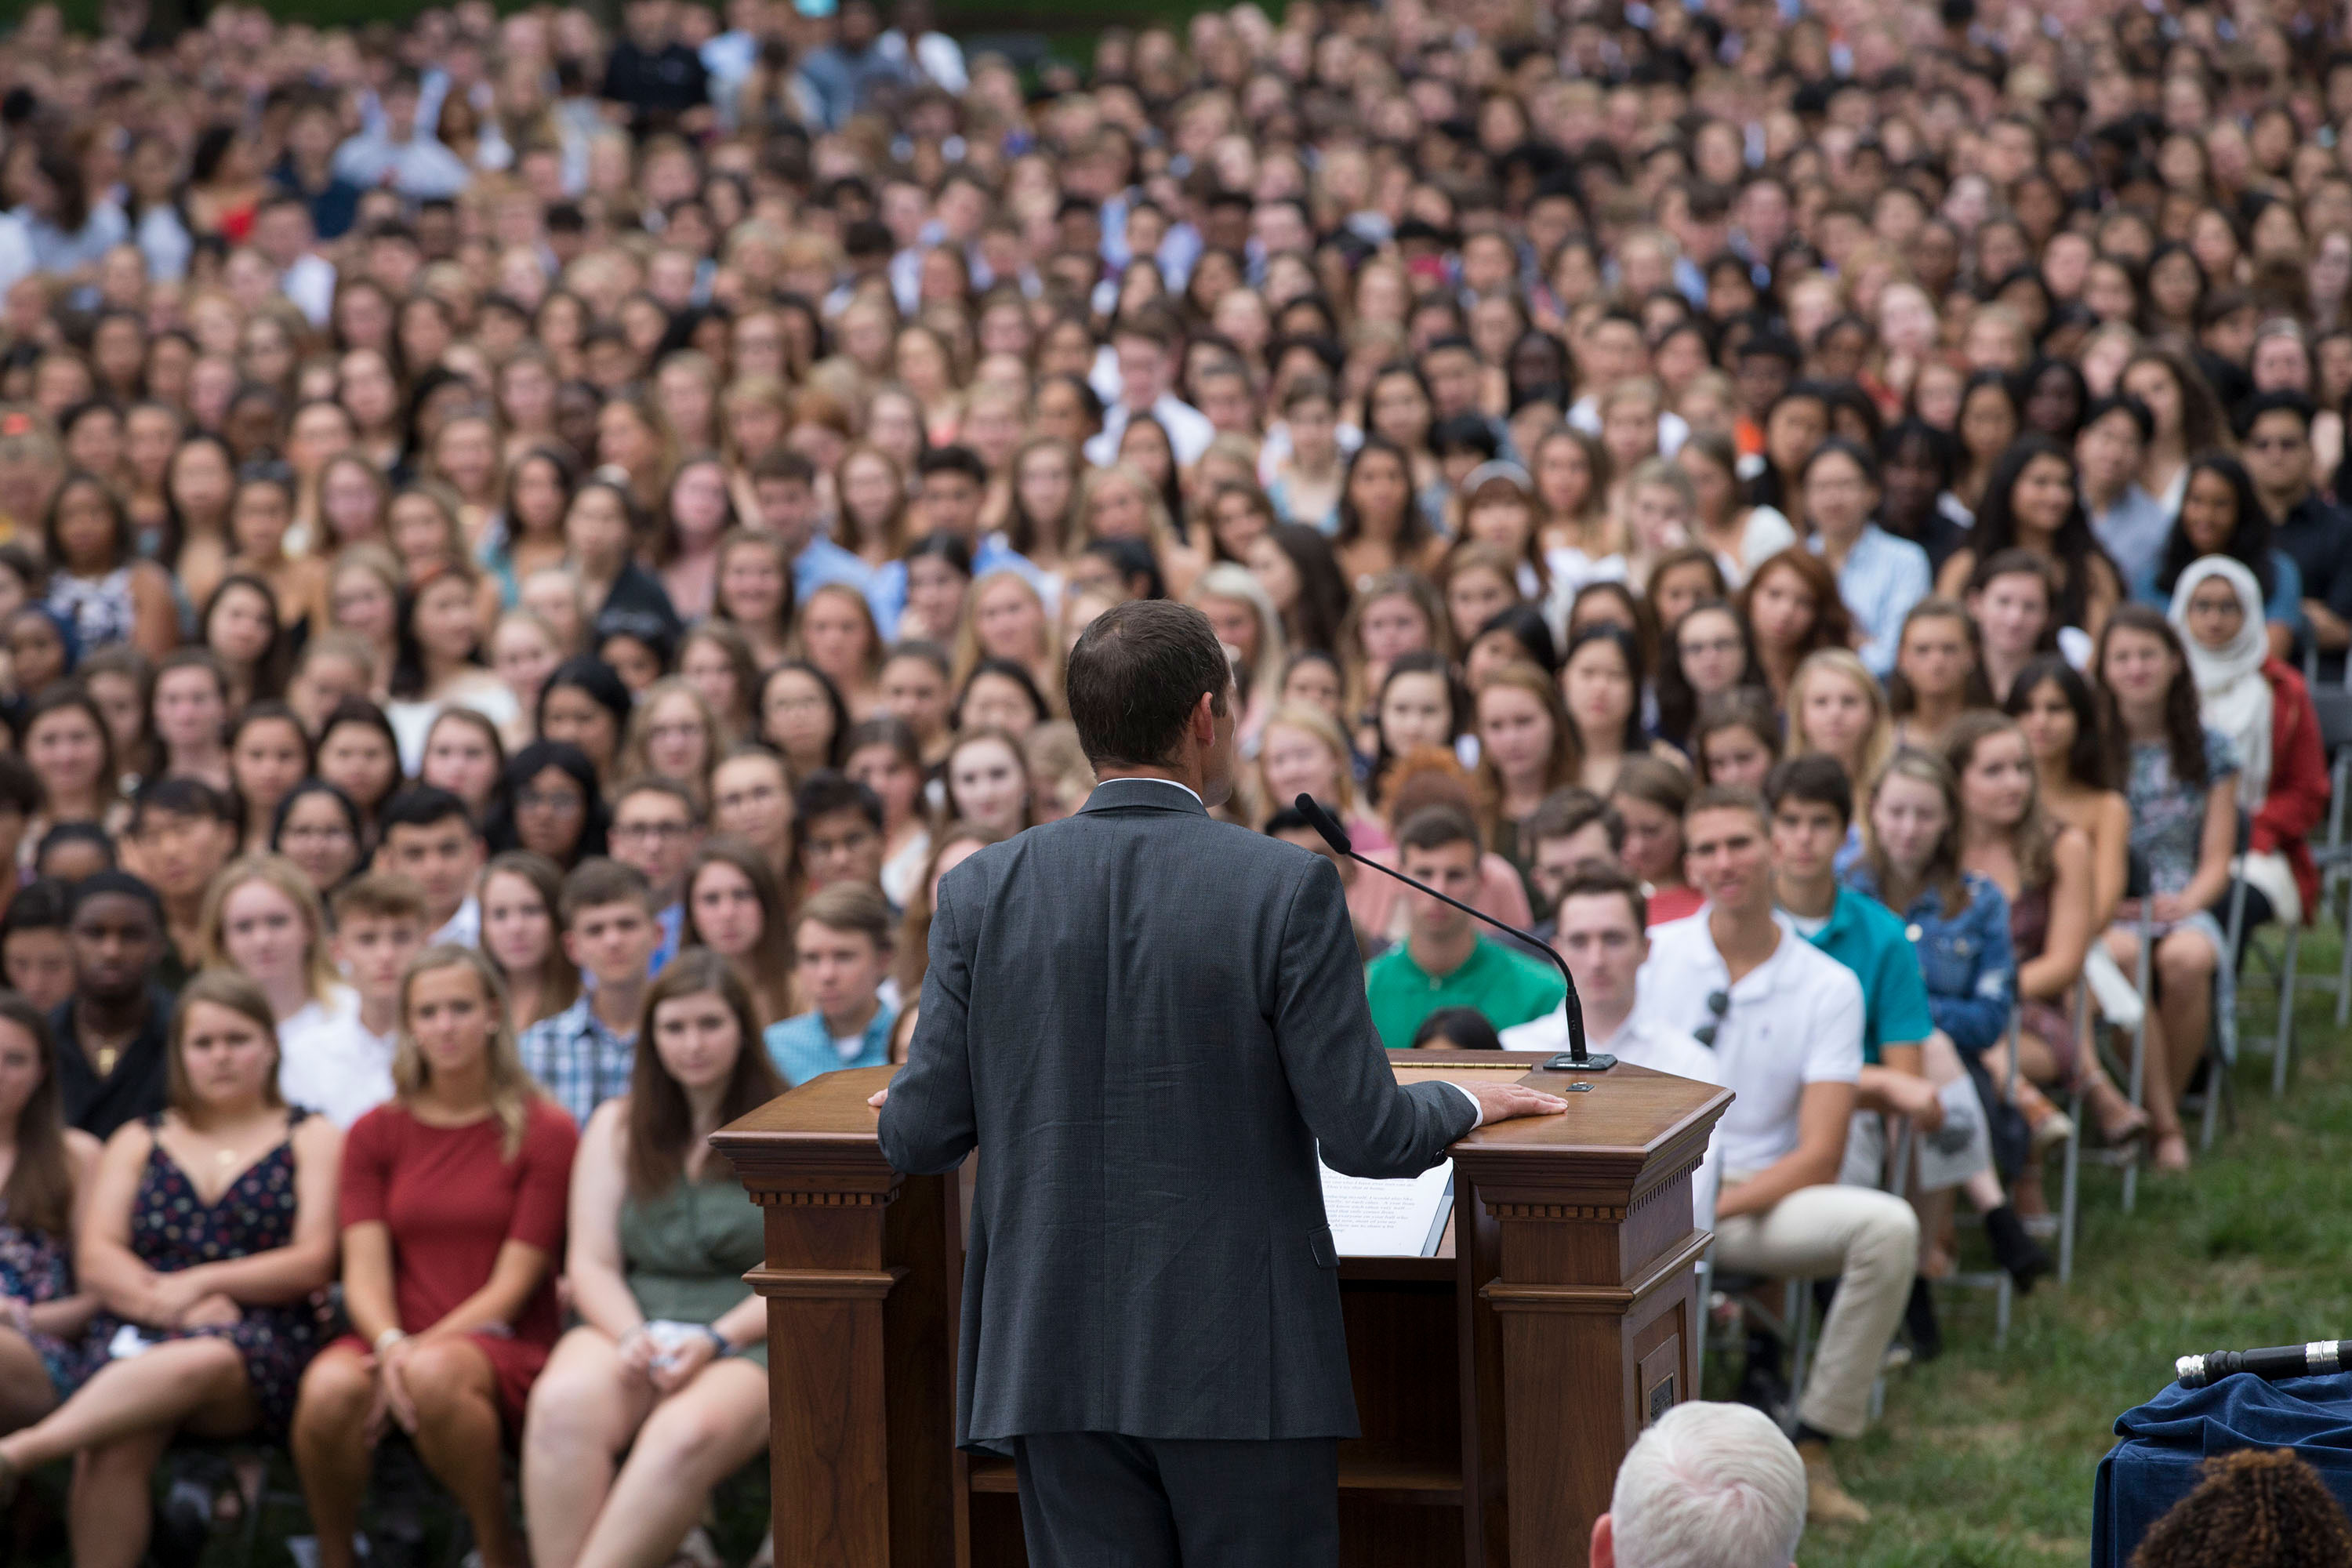 In his first address to the Class of 2023, President Jim Ryan encouraged students to be open to new experiences and overcome fears.